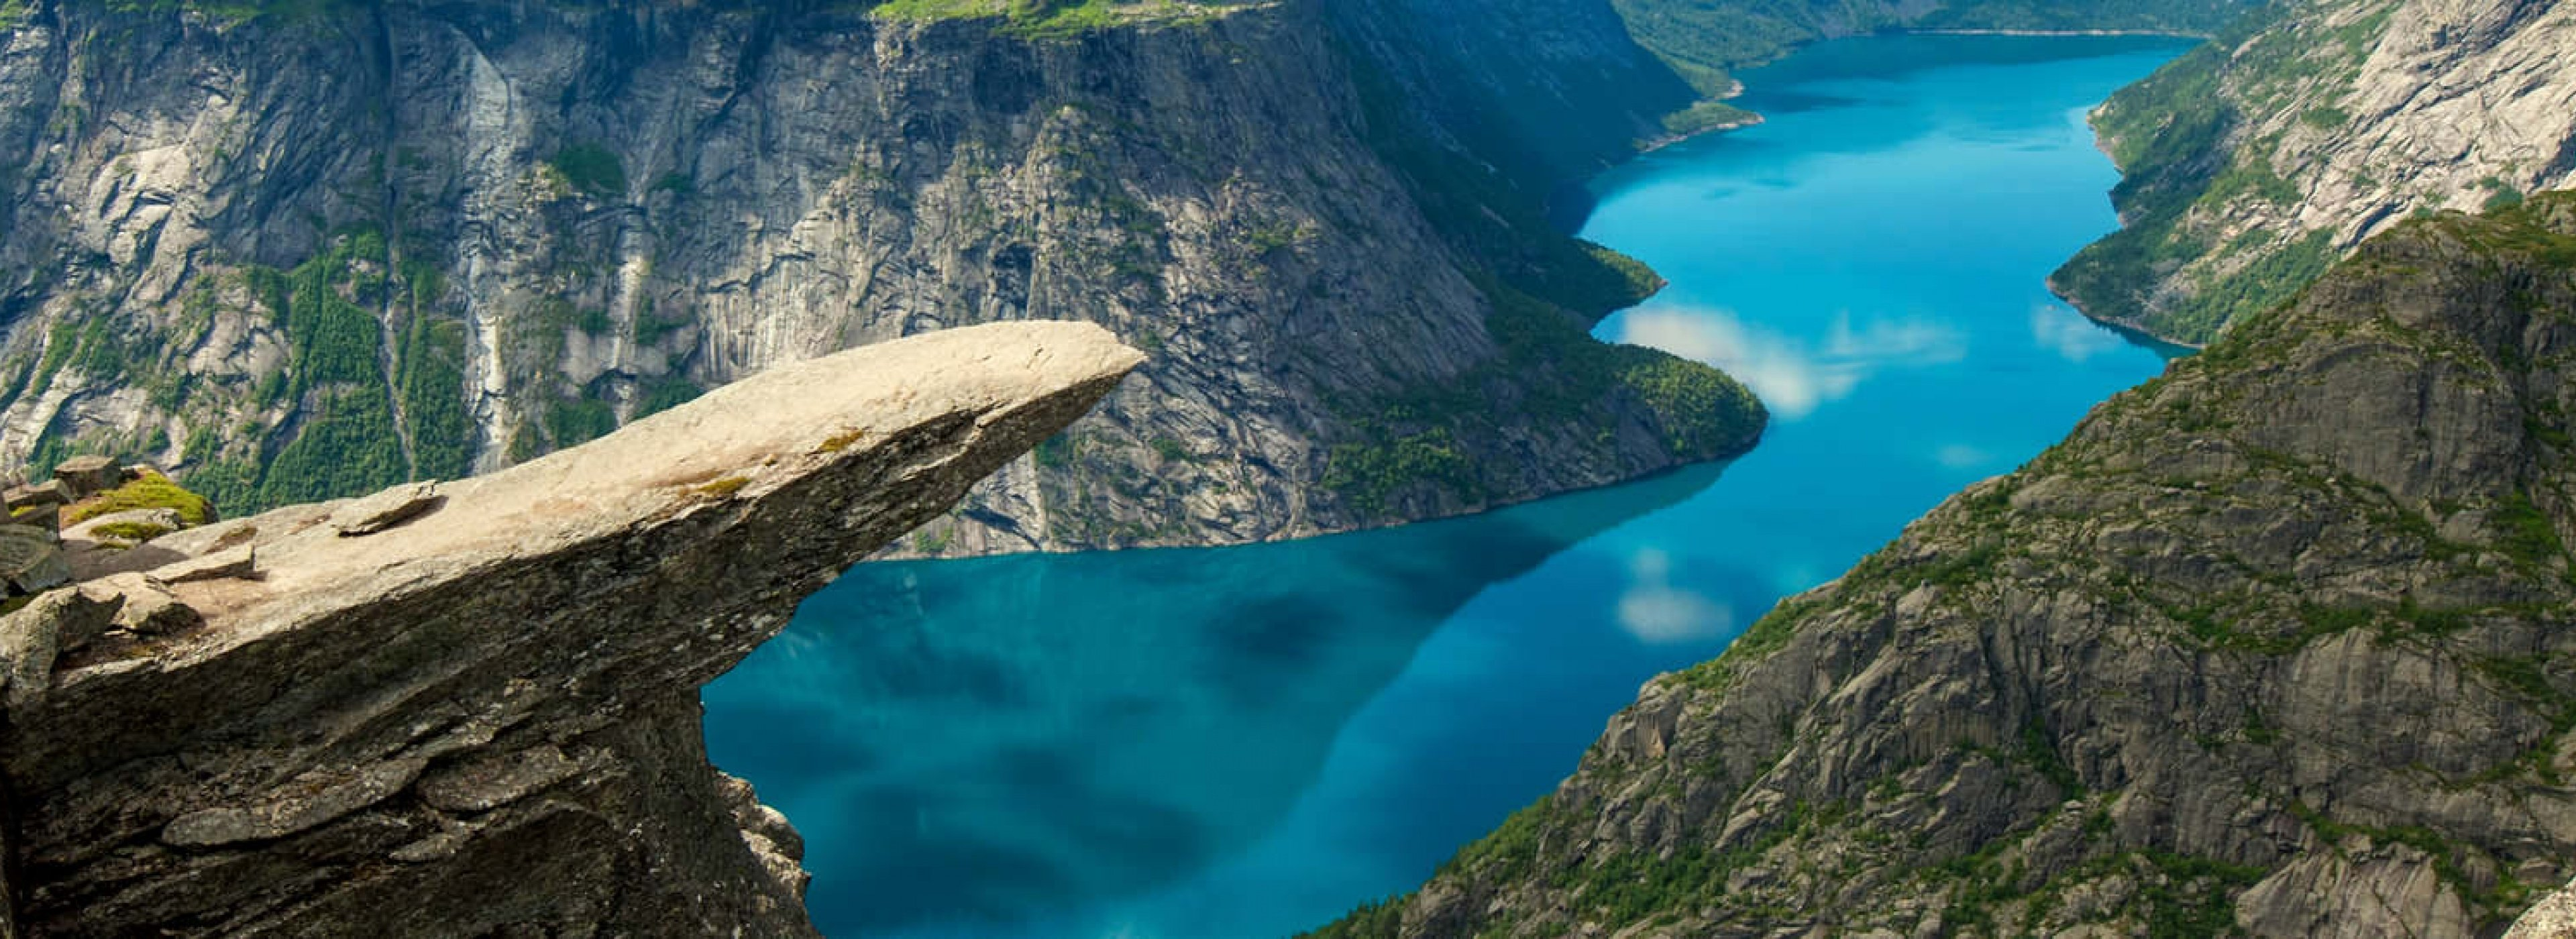 Travel to Norway to enjoy the beauty of spectacular Scandinavian fjords and nature